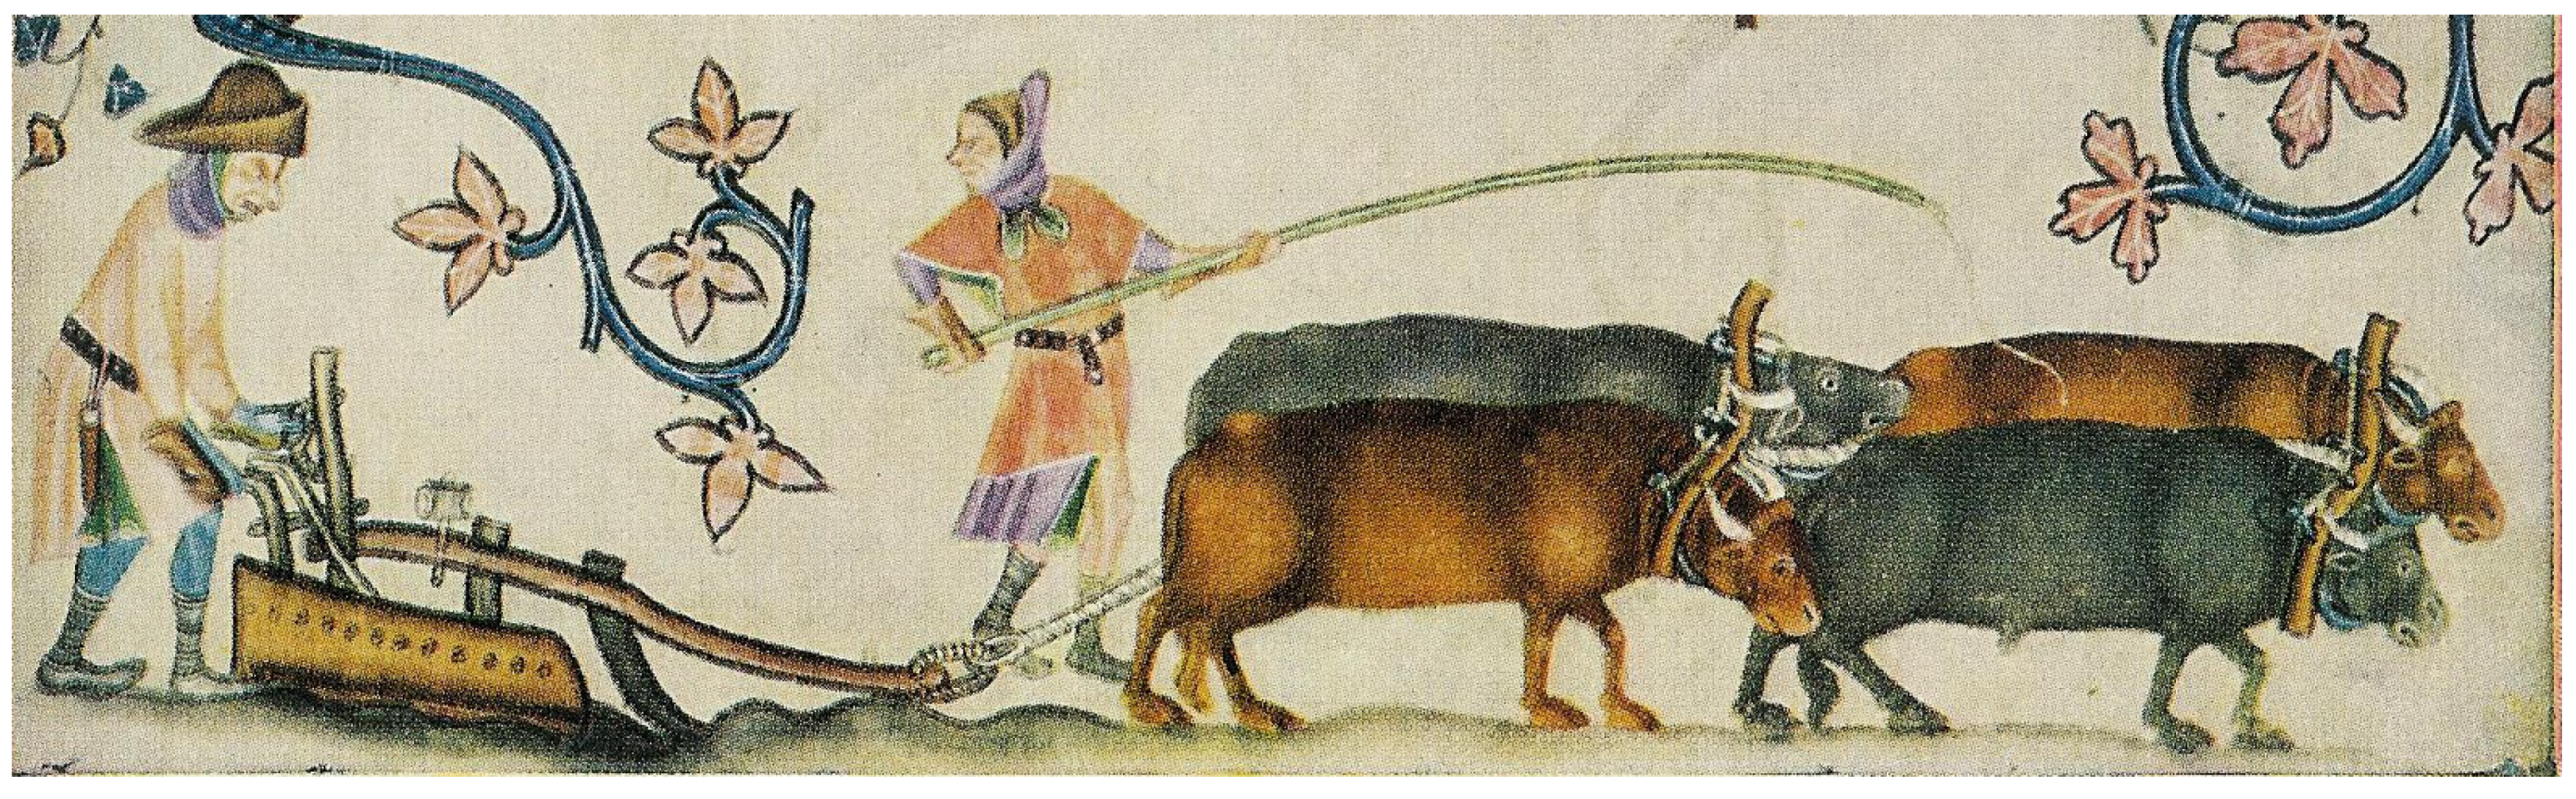 Diversity | Free Full-Text | On the History of Cattle